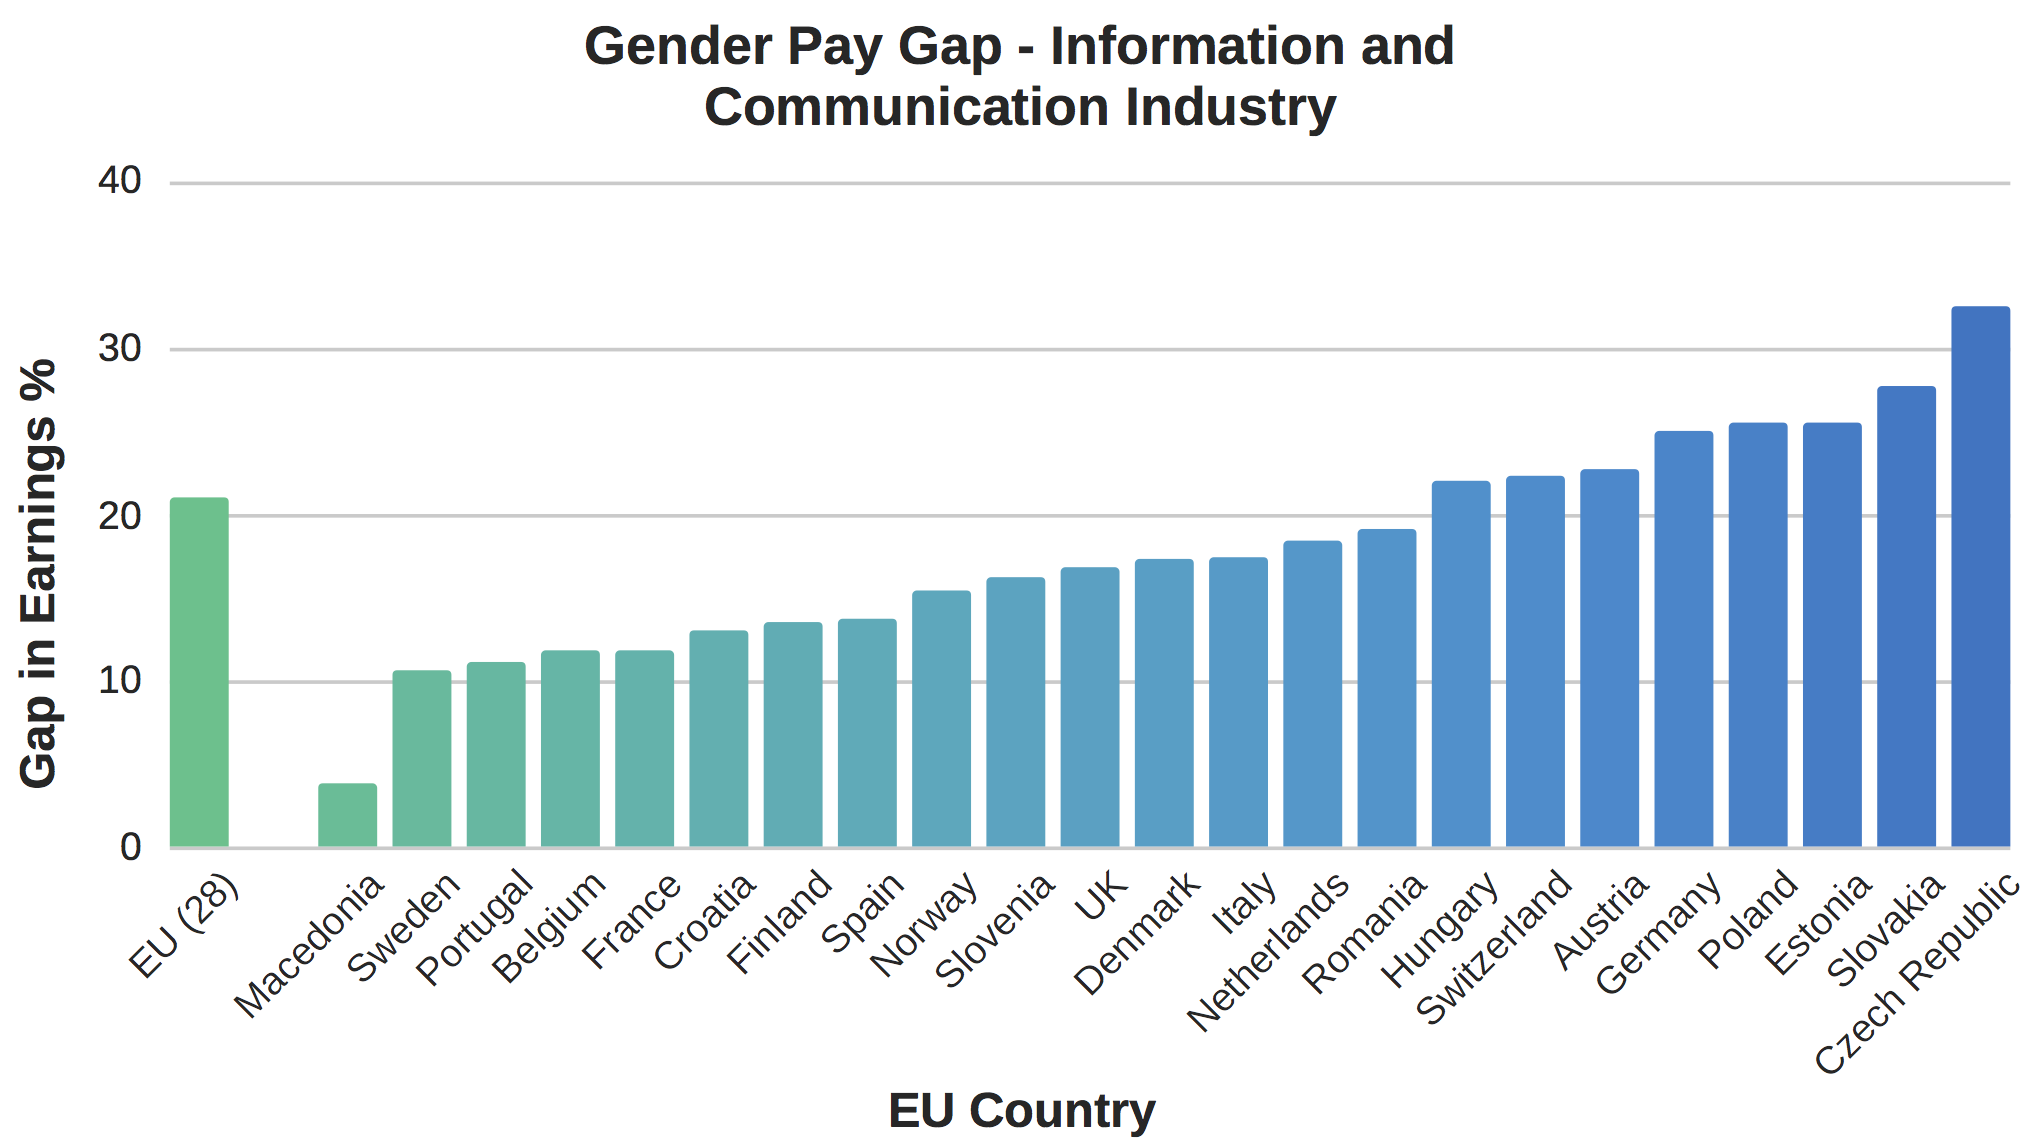 Gender Pay Gap - Information and Communication Industry